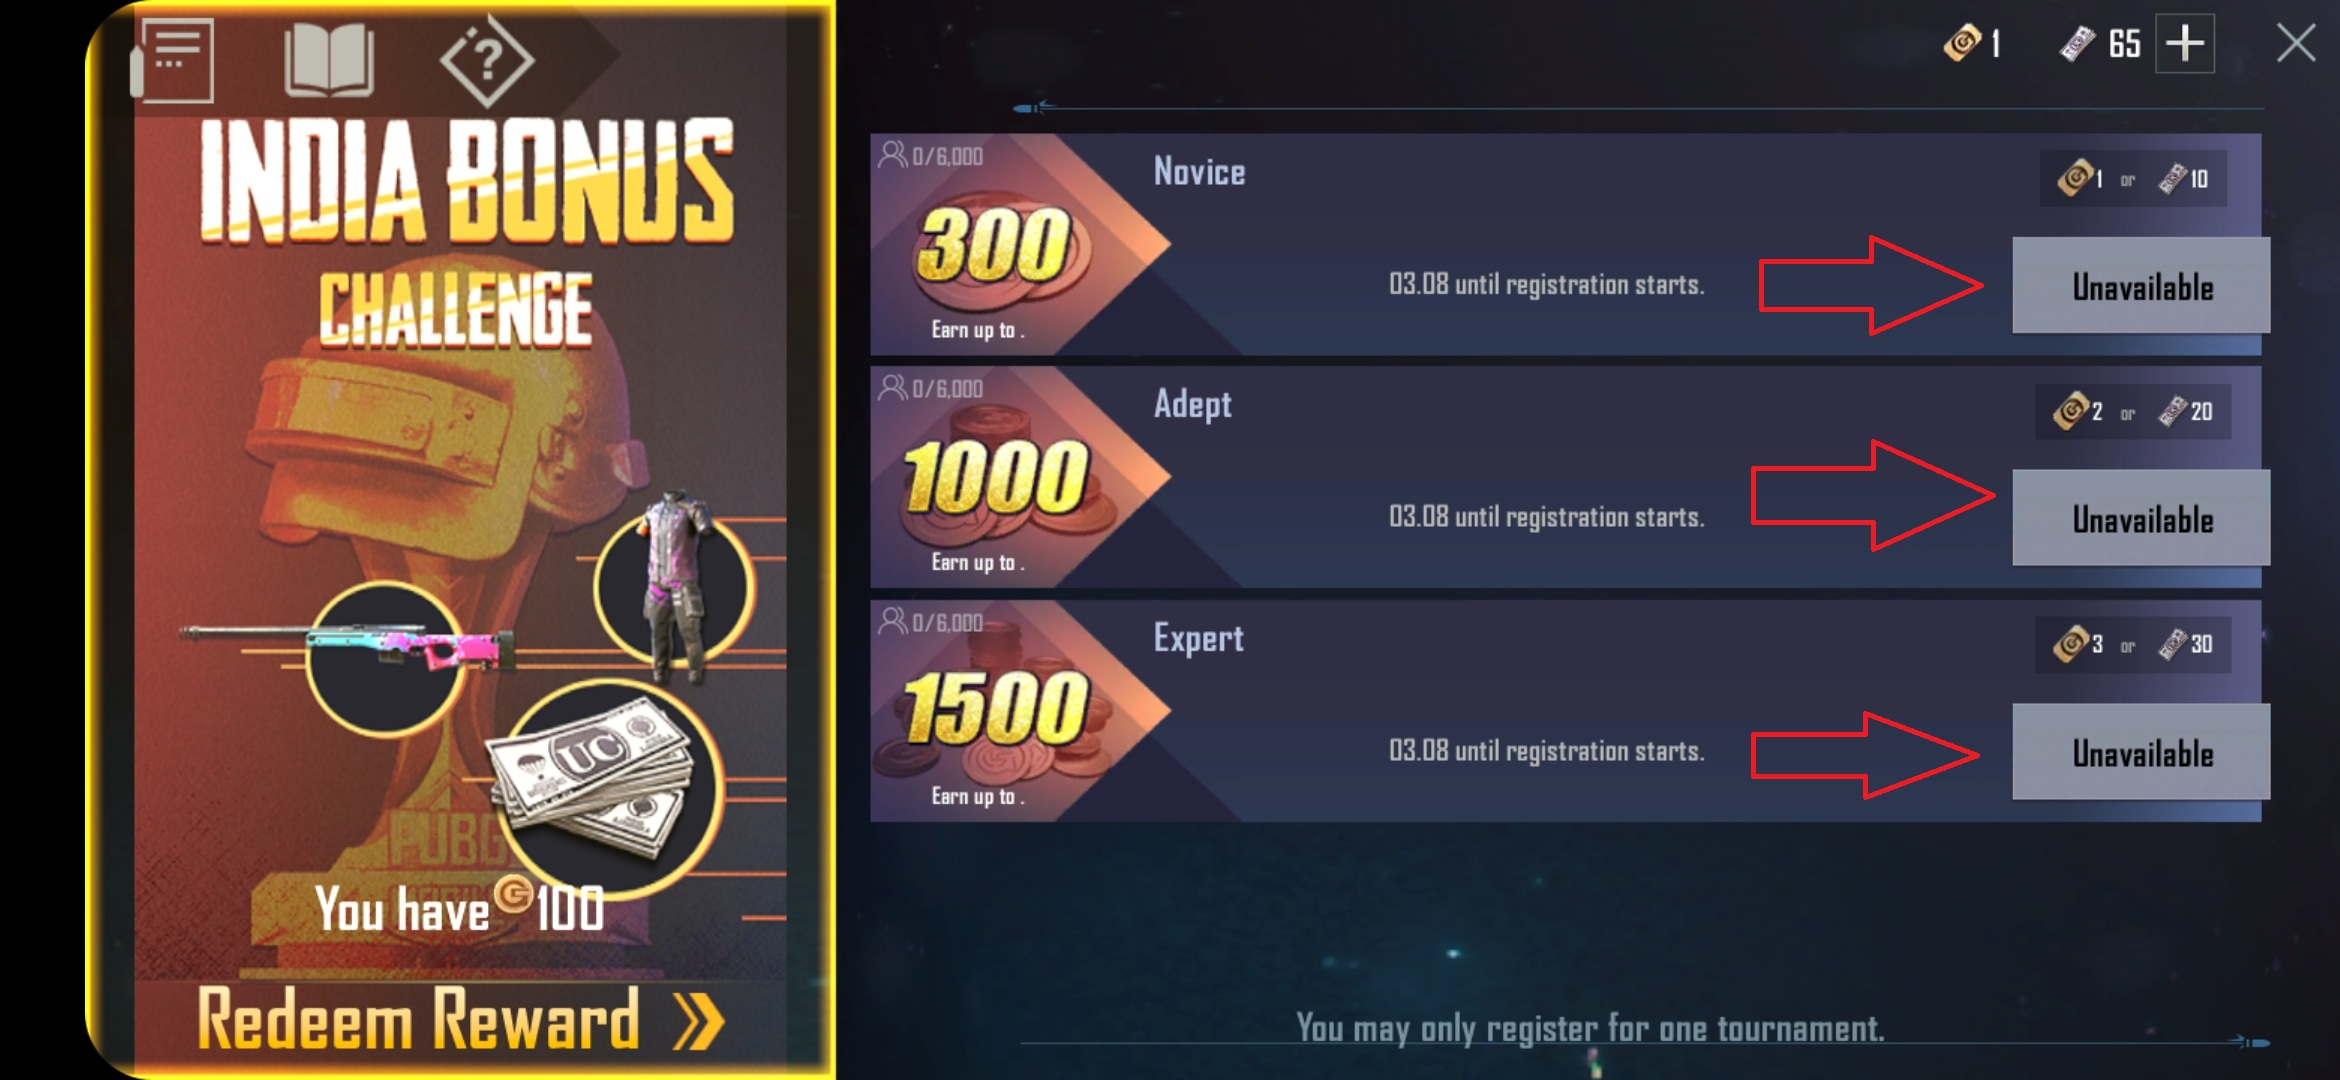 PUBG Mobile Tips: How To Convert BC (Battle Coin) into UC (Unknown